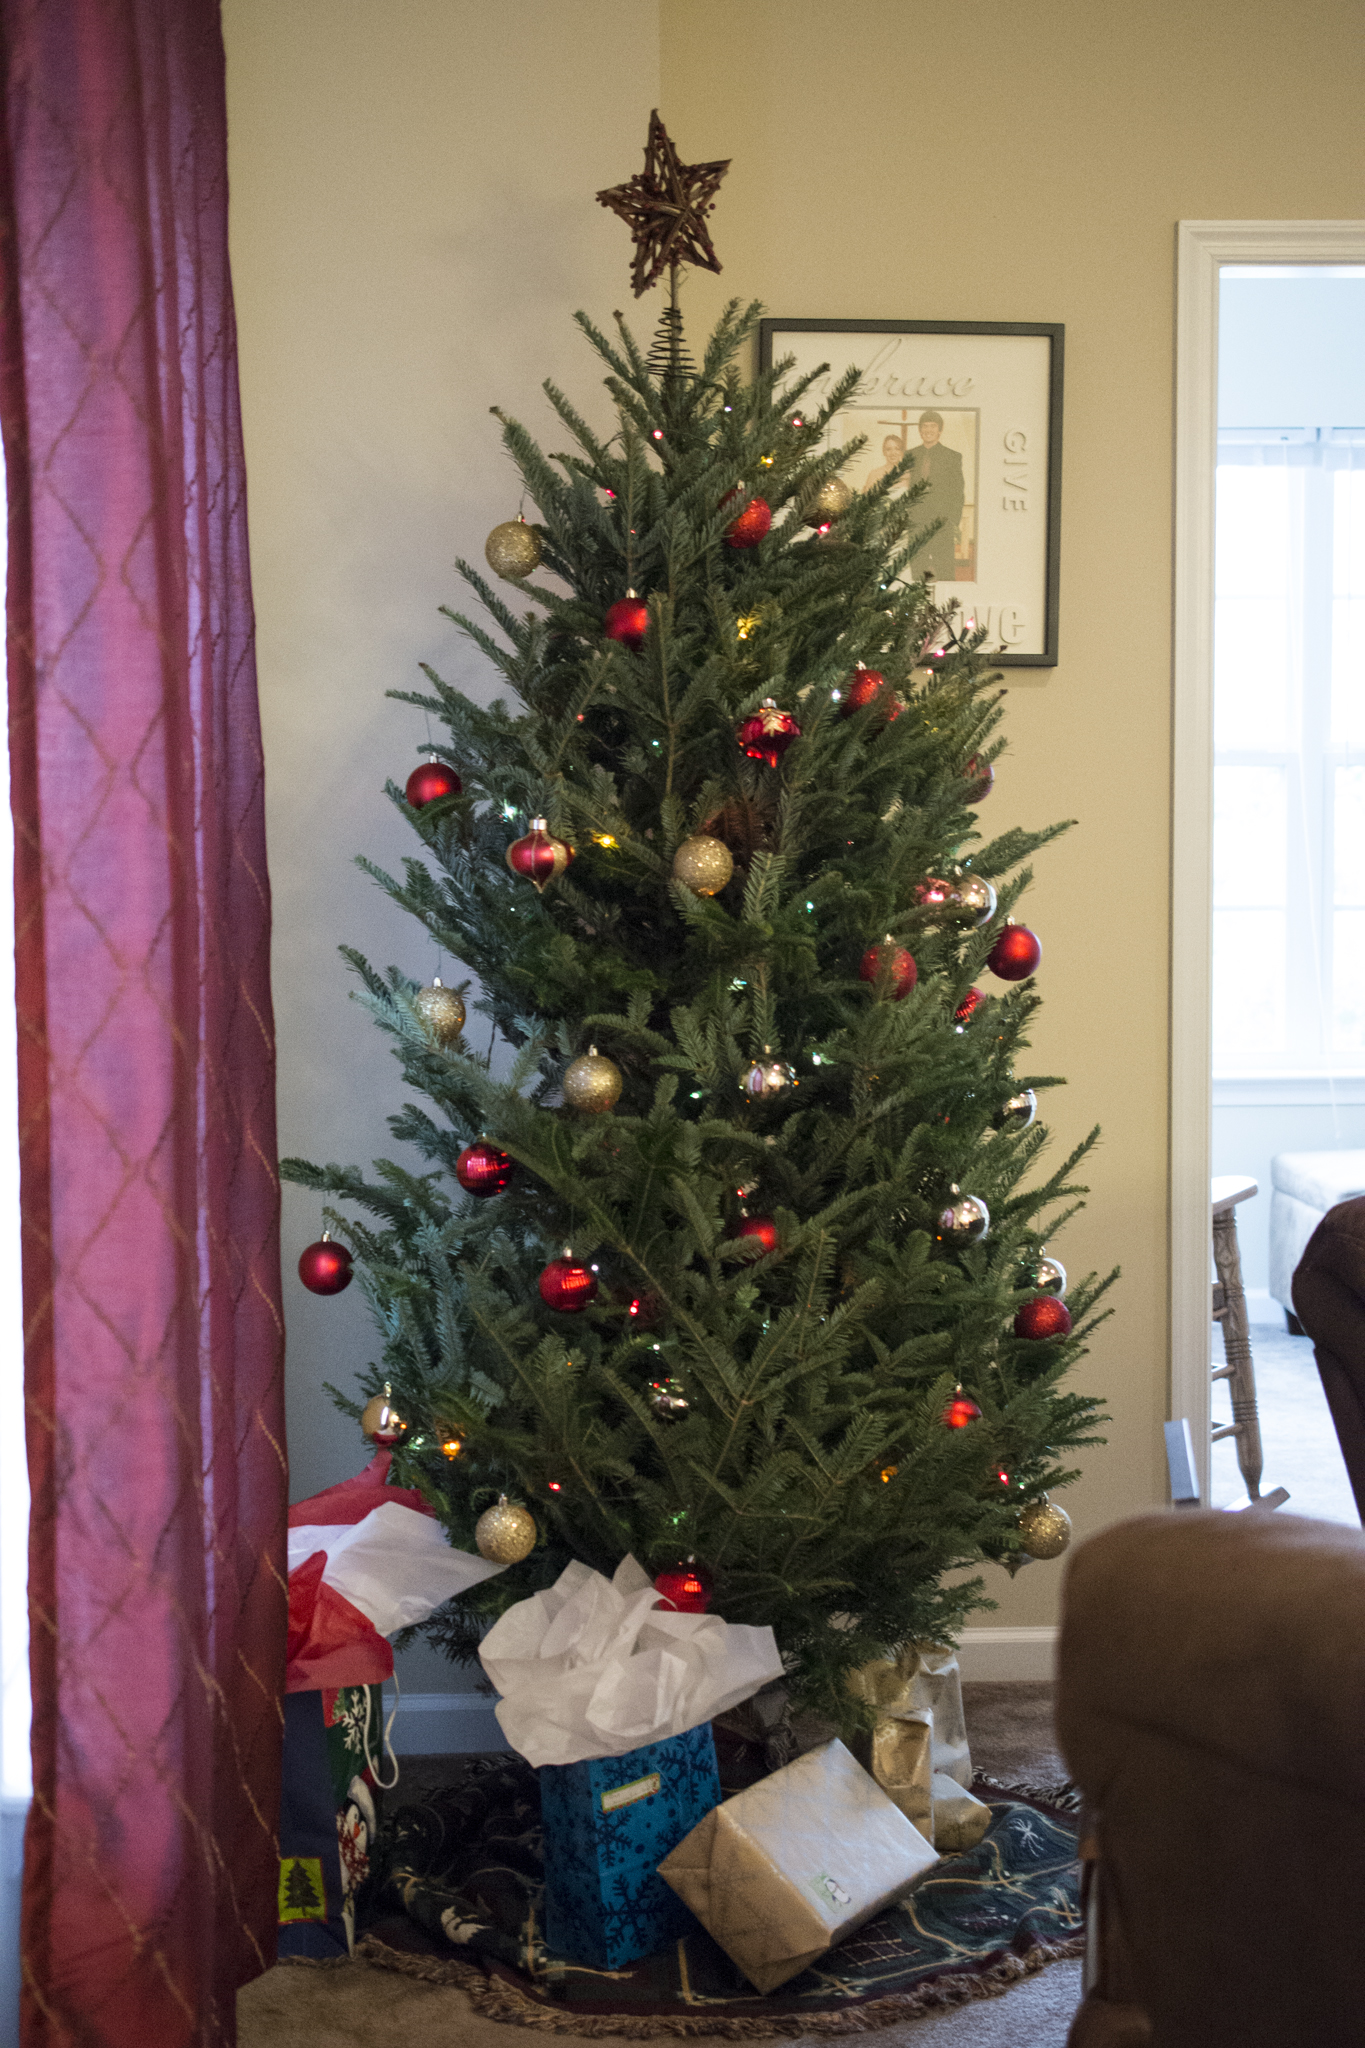 Real Christmas tree in the living room